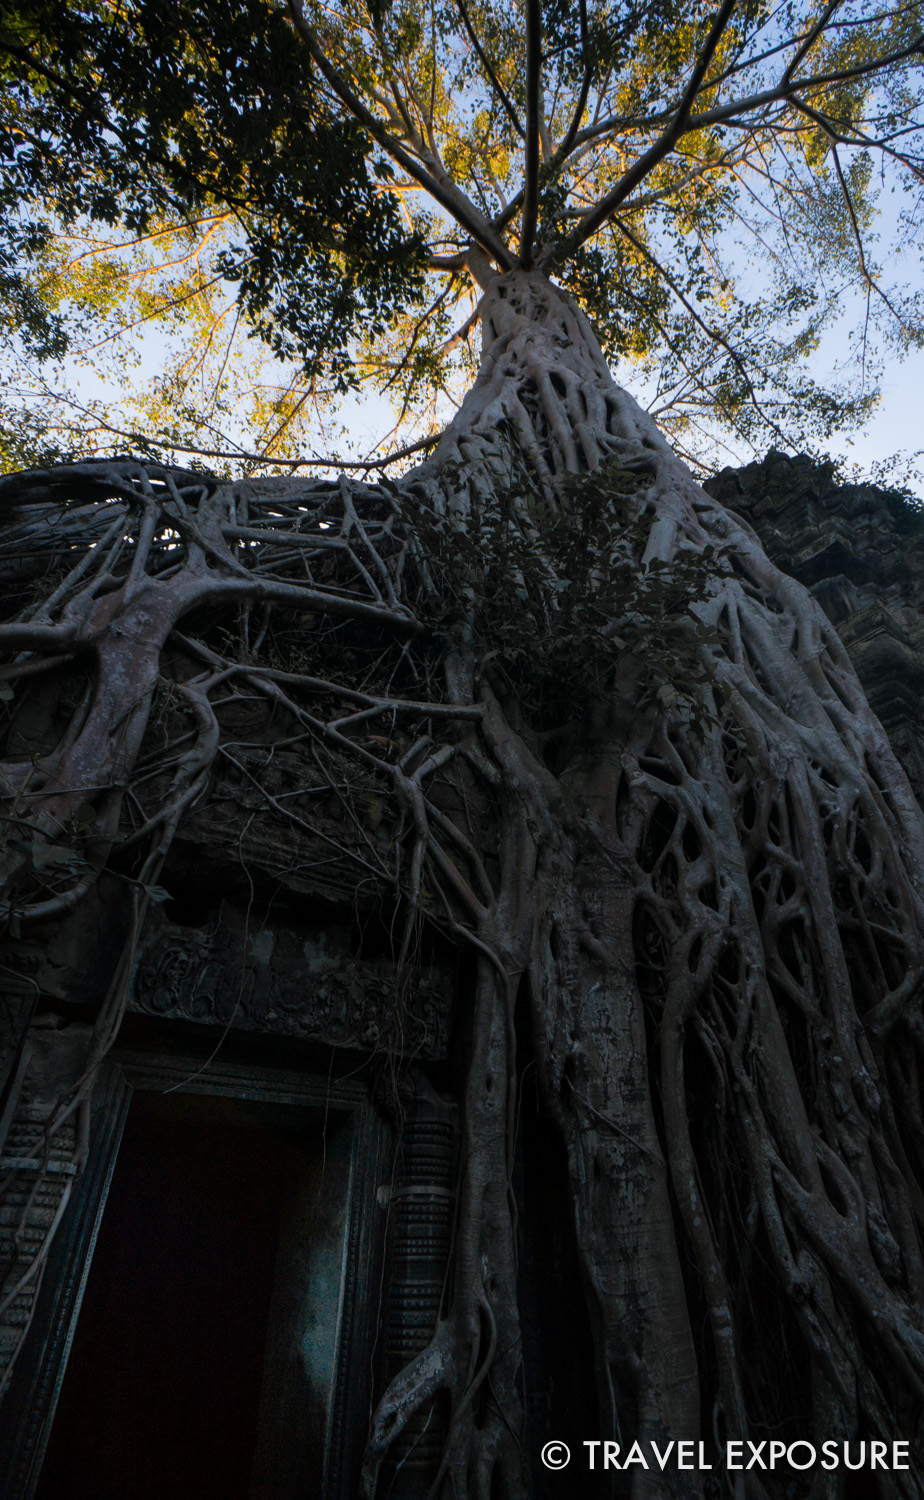 WEEK OF DECEMBER 8 Tangled roots of a tree grow over the Ta Prohm temple in Siem Reap, Cambodia.